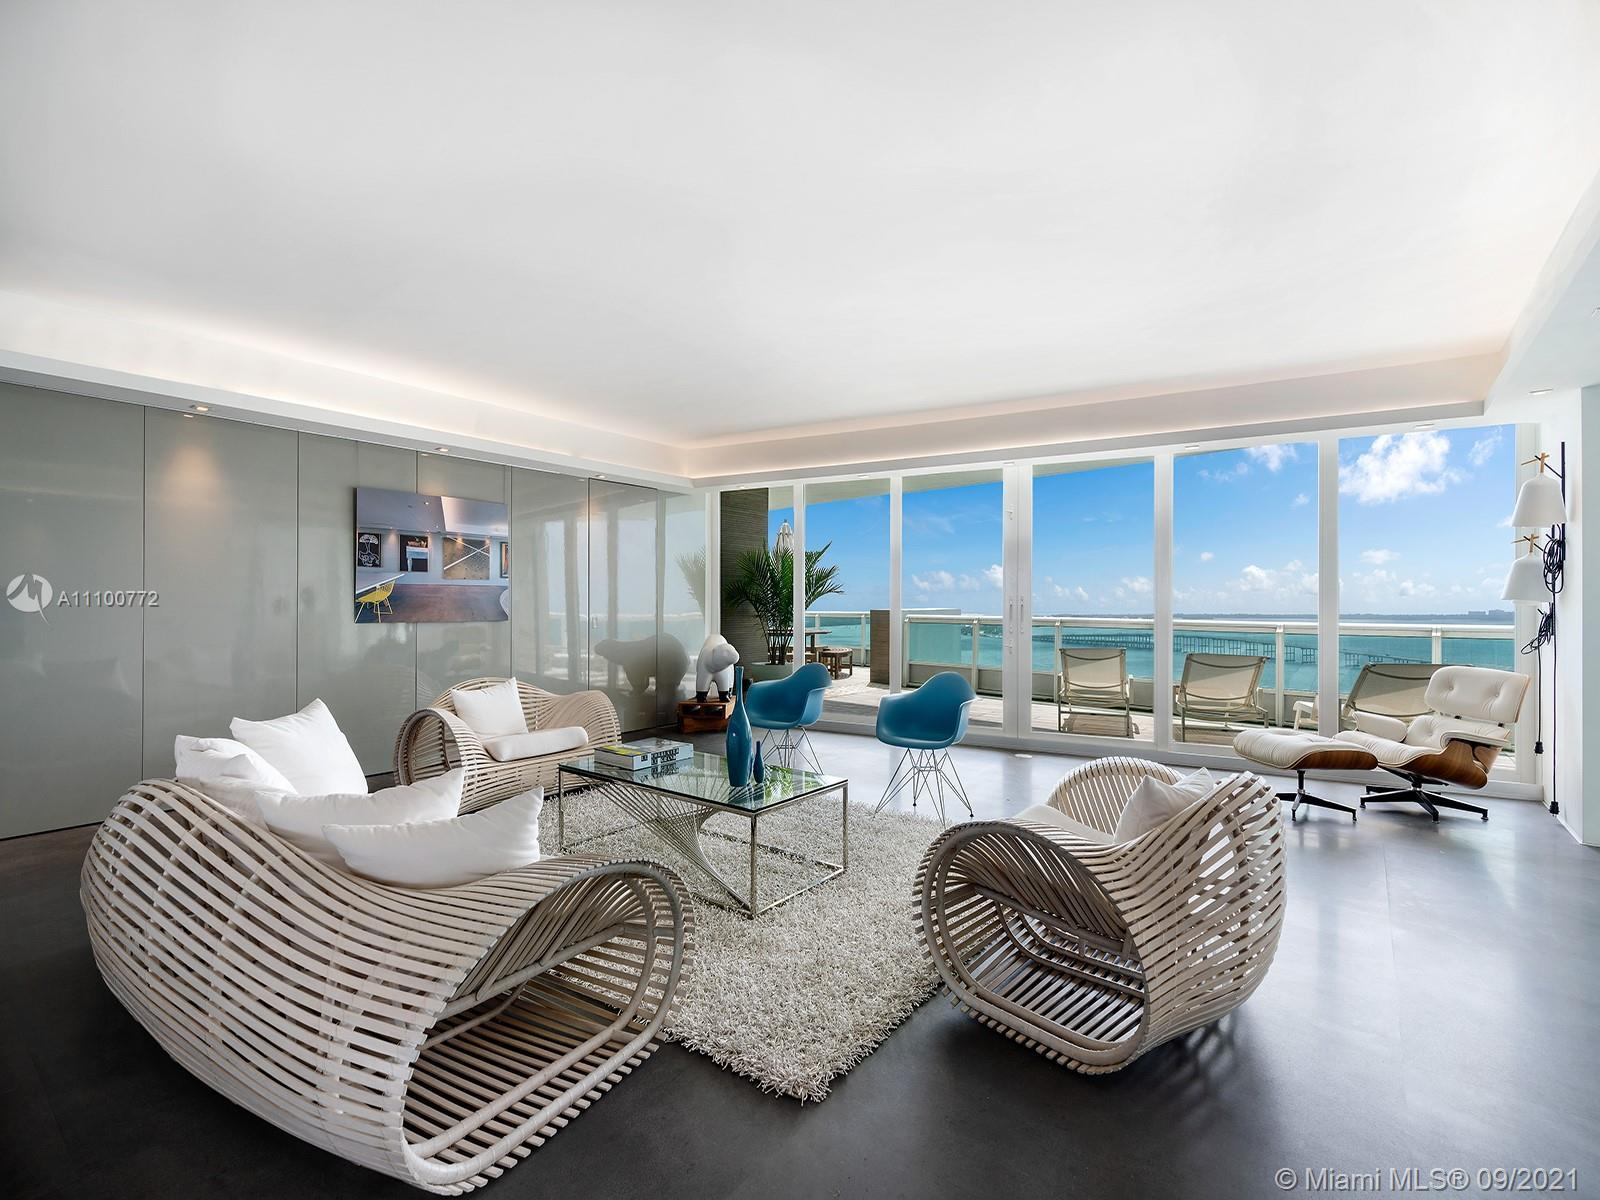 Remarks Remarks: This luxe residence on the 27th floor of the Santa Maria tower on Miami's Brickell